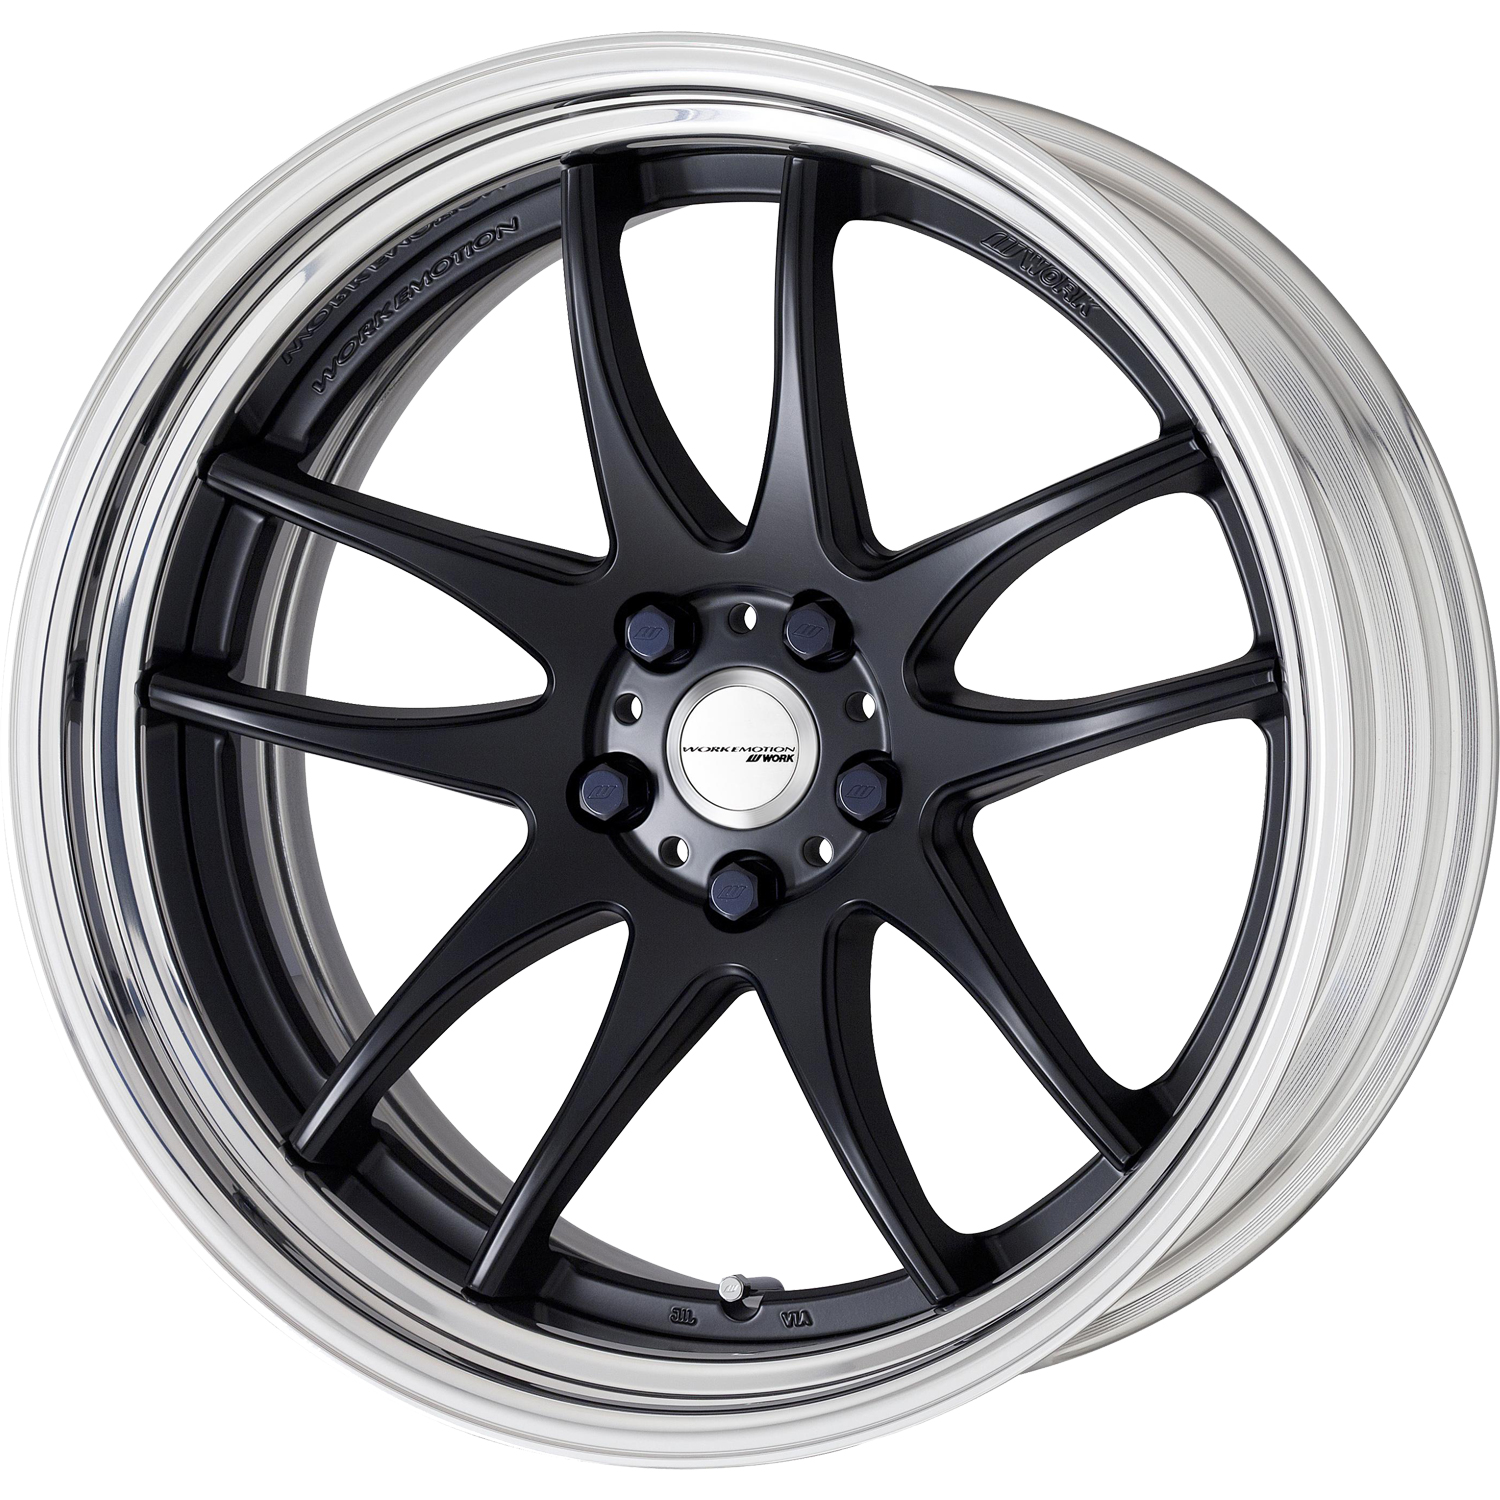 Emotion Cr 2p 19x9 5 Wheels For Sale Cr 2p1 Fitment Industries